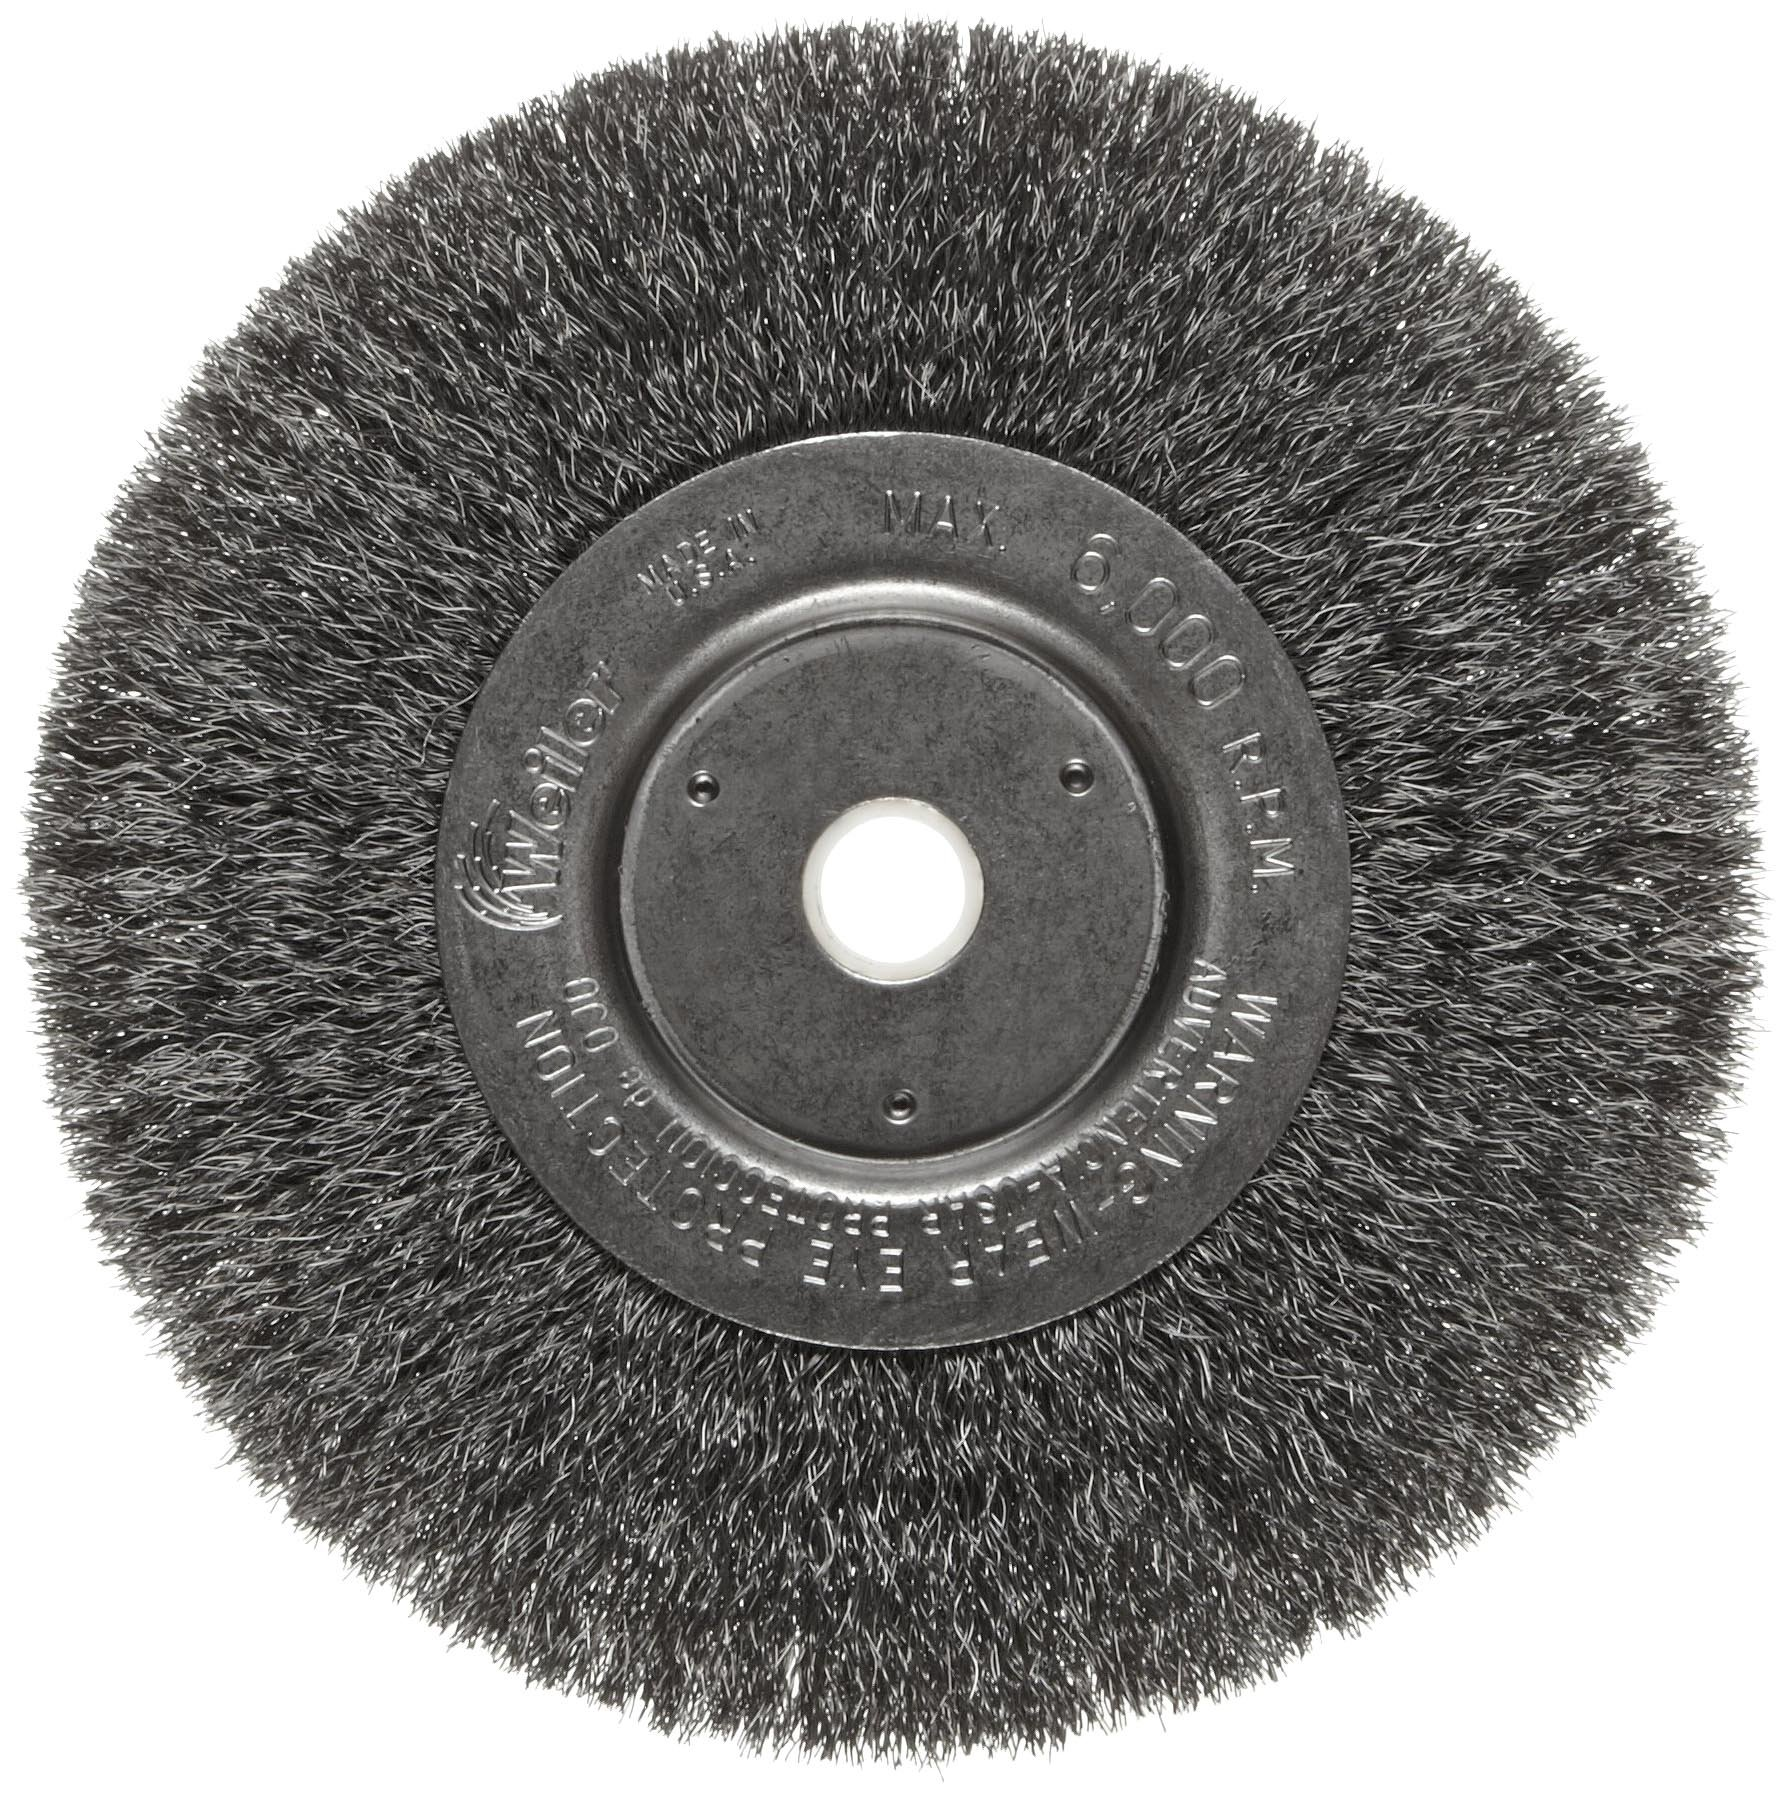 Weiler Trulock Narrow Face Wire Wheel Brush, Round Hole, Steel, Crimped Wire, 6'' Diameter, 0.008'' Wire Diameter, 5/8-1/2'' Arbor, 1-7/16'' Bristle Length, 3/4'' Brush Face Width, 6000 rpm by Weiler (Image #1)